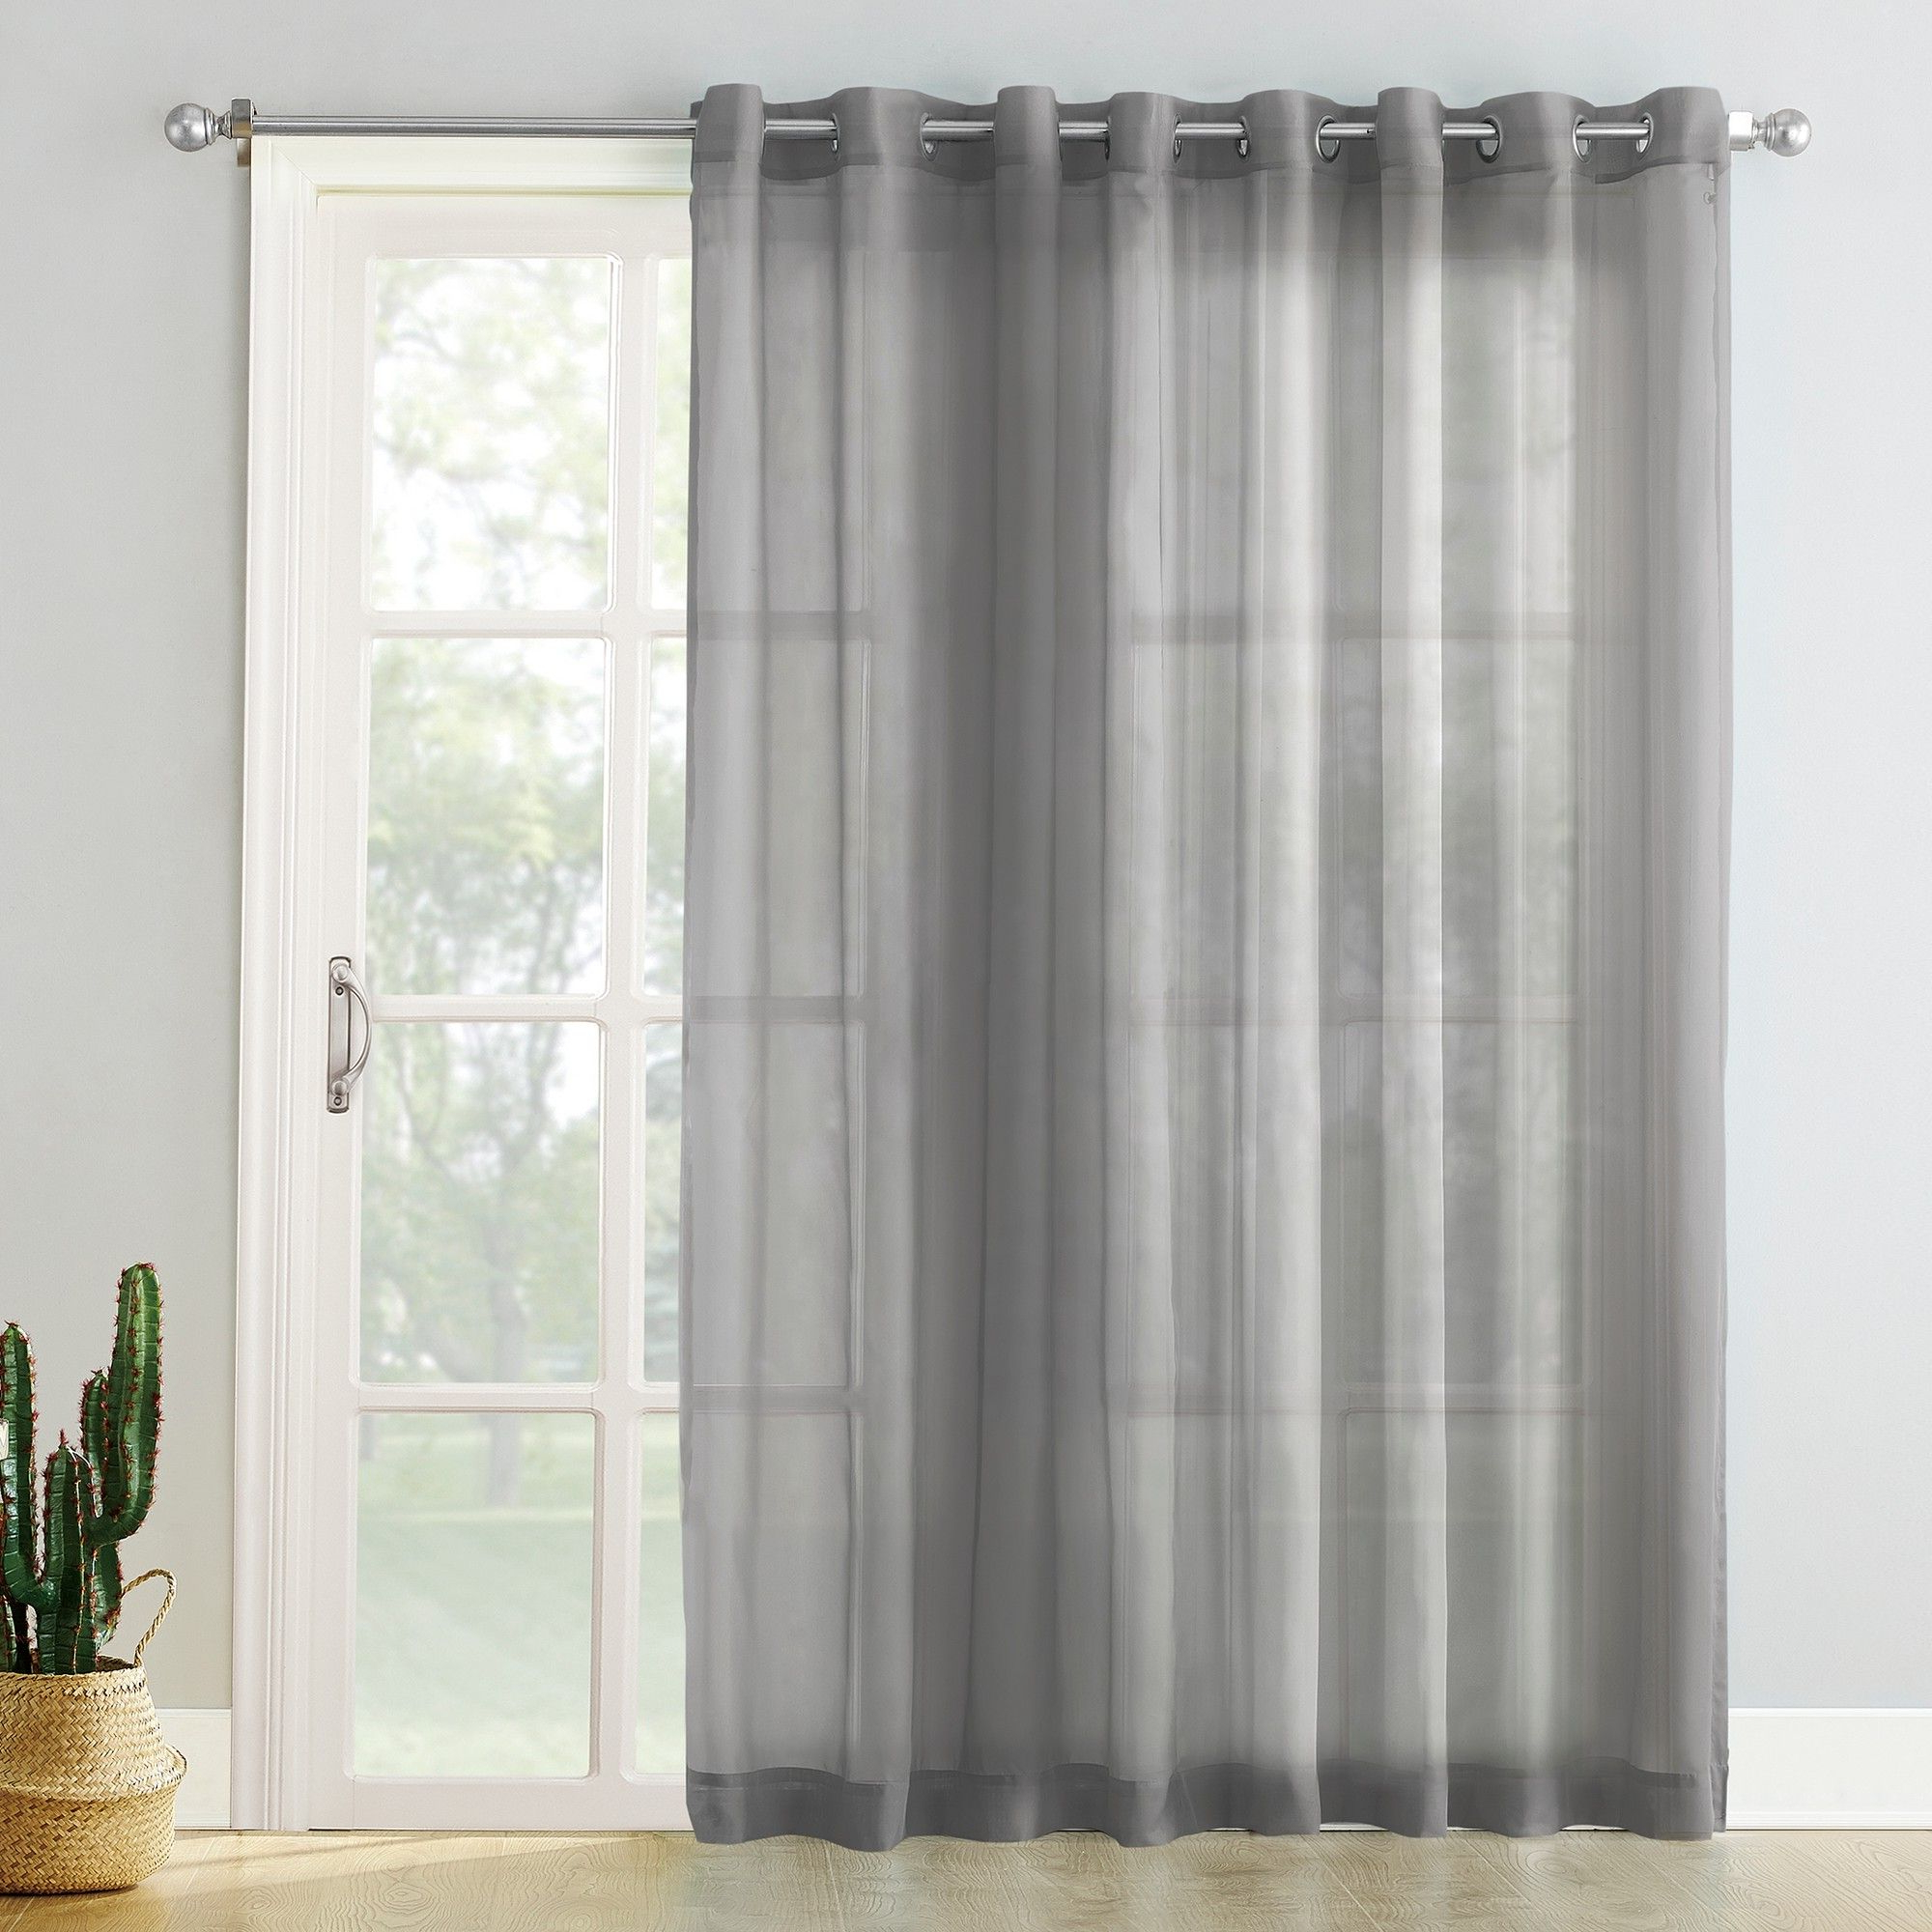 Famous Emily Sheer Voile Grommet Curtain Panels Within Emily Extra Wide Sheer Voile Sliding Door Patio Curtain (View 6 of 20)